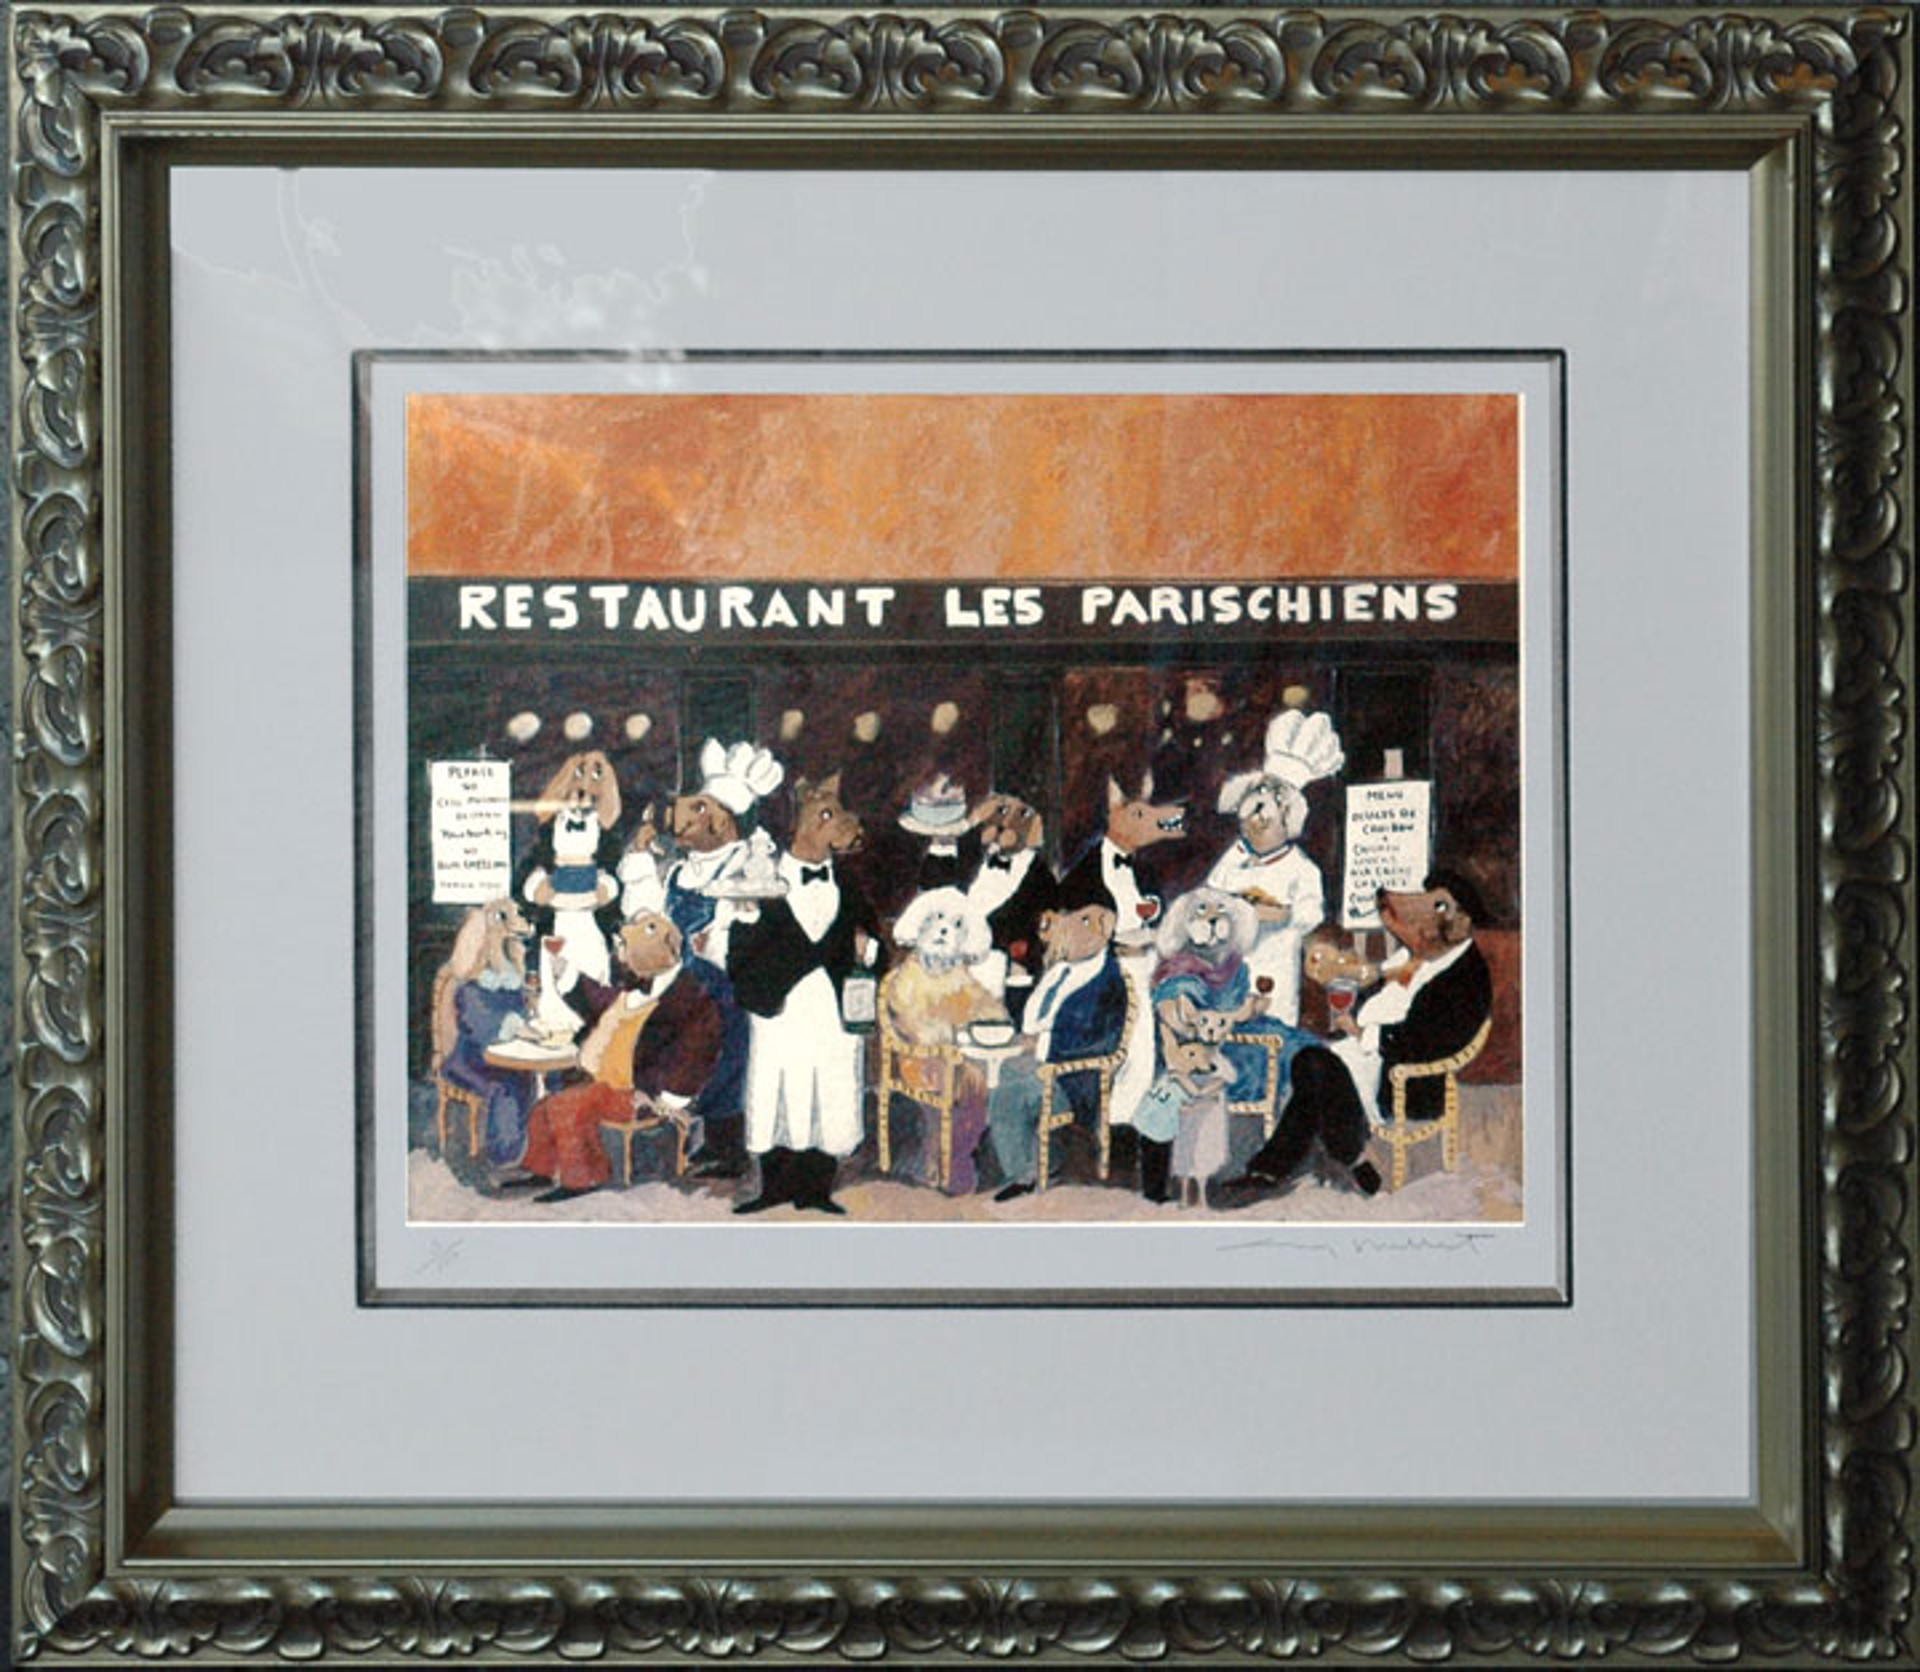 Restaurant Les Parischiens by Guy Buffet